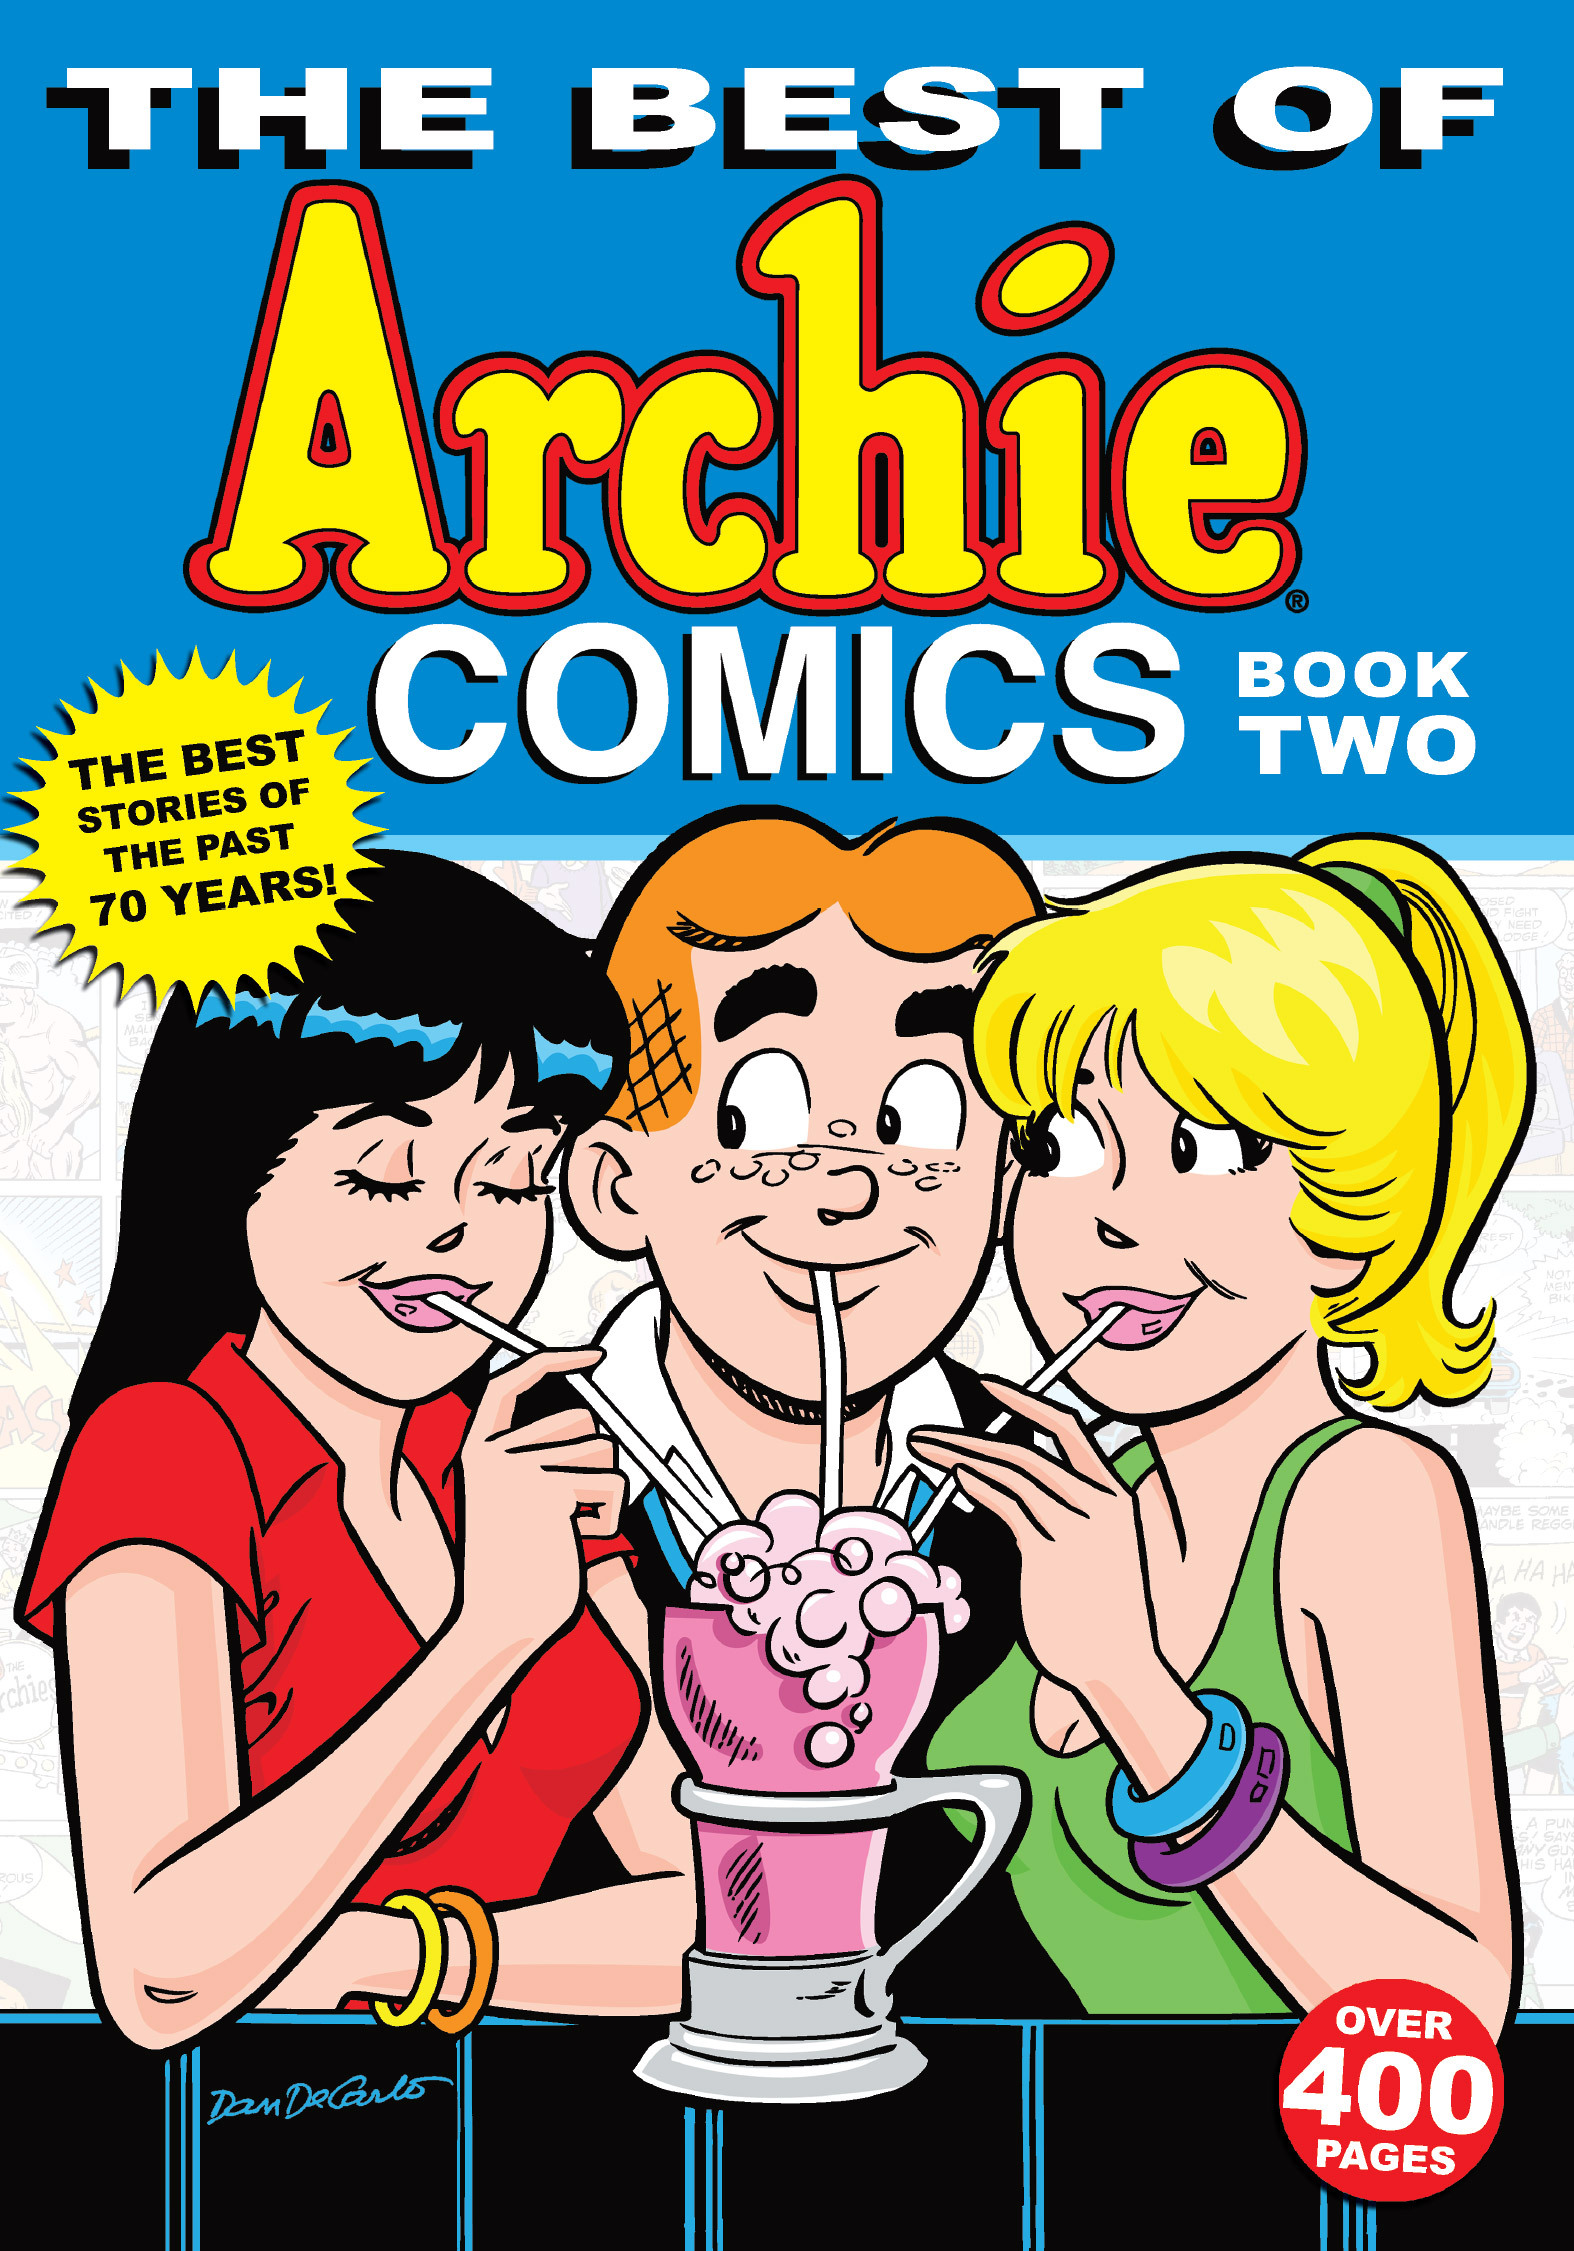 Read online The Best of Archie Comics comic -  Issue # TPB 2 (Part 1) - 1